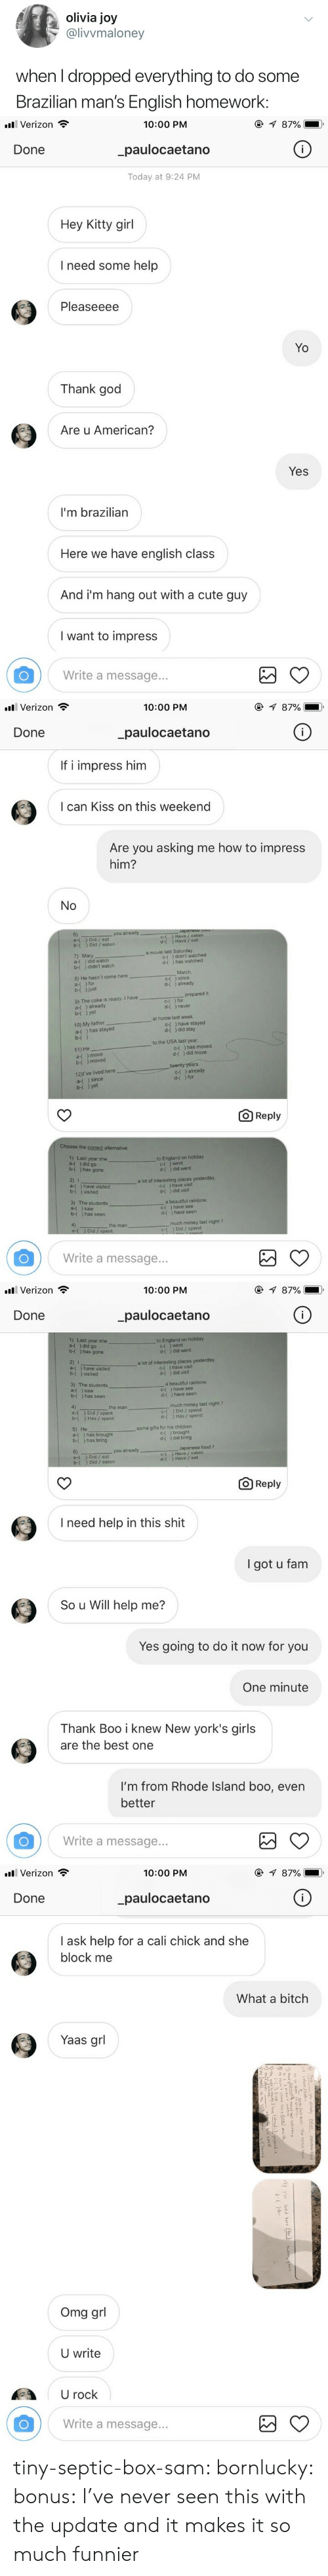 Yaas: olivia joy  @livvmaloney  when I dropped everything to do some  Brazilian man's English homework:   all Verizon  10:00 PM  _paulocaetano  Today at 9:24 PM  Done  Hey Kitty girl  I need some help  Pleaseeee  Yo  Thank god  Are u American?  Yes  I'm brazilian  Here we have english class  And i'm hang out with a cute guy  I want to impress  Write a message...   . Verizon  10:00 PM  Done  paulocaetano  If i impress him  I can Kiss on this weekend  Are you asking me how to impress  him?  6)  a-( ) Did / eat  b-( ) Did / eaten  you  c-( ) Have /eaten  d-( ) Have / eat  a movie last Saturday  7) Mary  a-( ) did watch  b-( ) didn't watch  C-(  d-(  ) didn't watched  ) has watched  March  8) He hasn't come here  d-( ) already  b-( )just  9) The cake is ready I have  a-( ) already  b-( ) yet  prepared it  { ) for  d-( ) never  at home last week  10) My father  a-( ) has stayed  have stayed  d-(  ) did stay  to the USA last year  11) He  a-( ) move  b-( ) moved  C-( ) has moved  d-( ) did move  twenty years.  12)r've lived here  a-(since  b-() yet  c-( ) already  d-( ) for  O Reply  Choose the correct alternative  1) Last year she  a-( )did go  b-( ) has gone  to England on holiday  c-( ) went  d-( ) did went  2) I  a-( ) have visited  b-( ) visited  a lot of interesting places yesterday  C-( ) have visit  d-( ) did visit  3) The students  a-( ) saw  b-( ) has seen  a beautiful rainbow  c-( ) have see  d-( ) have seen  4)  the man  much money last night ?  c-() Did / spend  Write a message...   . Verizon  10:00 PM  Done  paulocaetano  1) Last year she  a-() did go  b-( ) has gone  to England on holiday  c-( ) went  d-( ) did went  2) 1  a-( ) have visited  b-( ) visited  a lot of interesting places yesterday  c-《 ) have visit  d-( ) did visit  3) The students  a-( ) saw  b-( ) has seen  a beautiful rainbow  c-f ) have see  d-( ) have seen  much money last night?  ) Did / spend  ) Has / spend  the man  a-( ) Did / spent  b-( ) Has / spent  c-(  d-(  some gifts for his chi